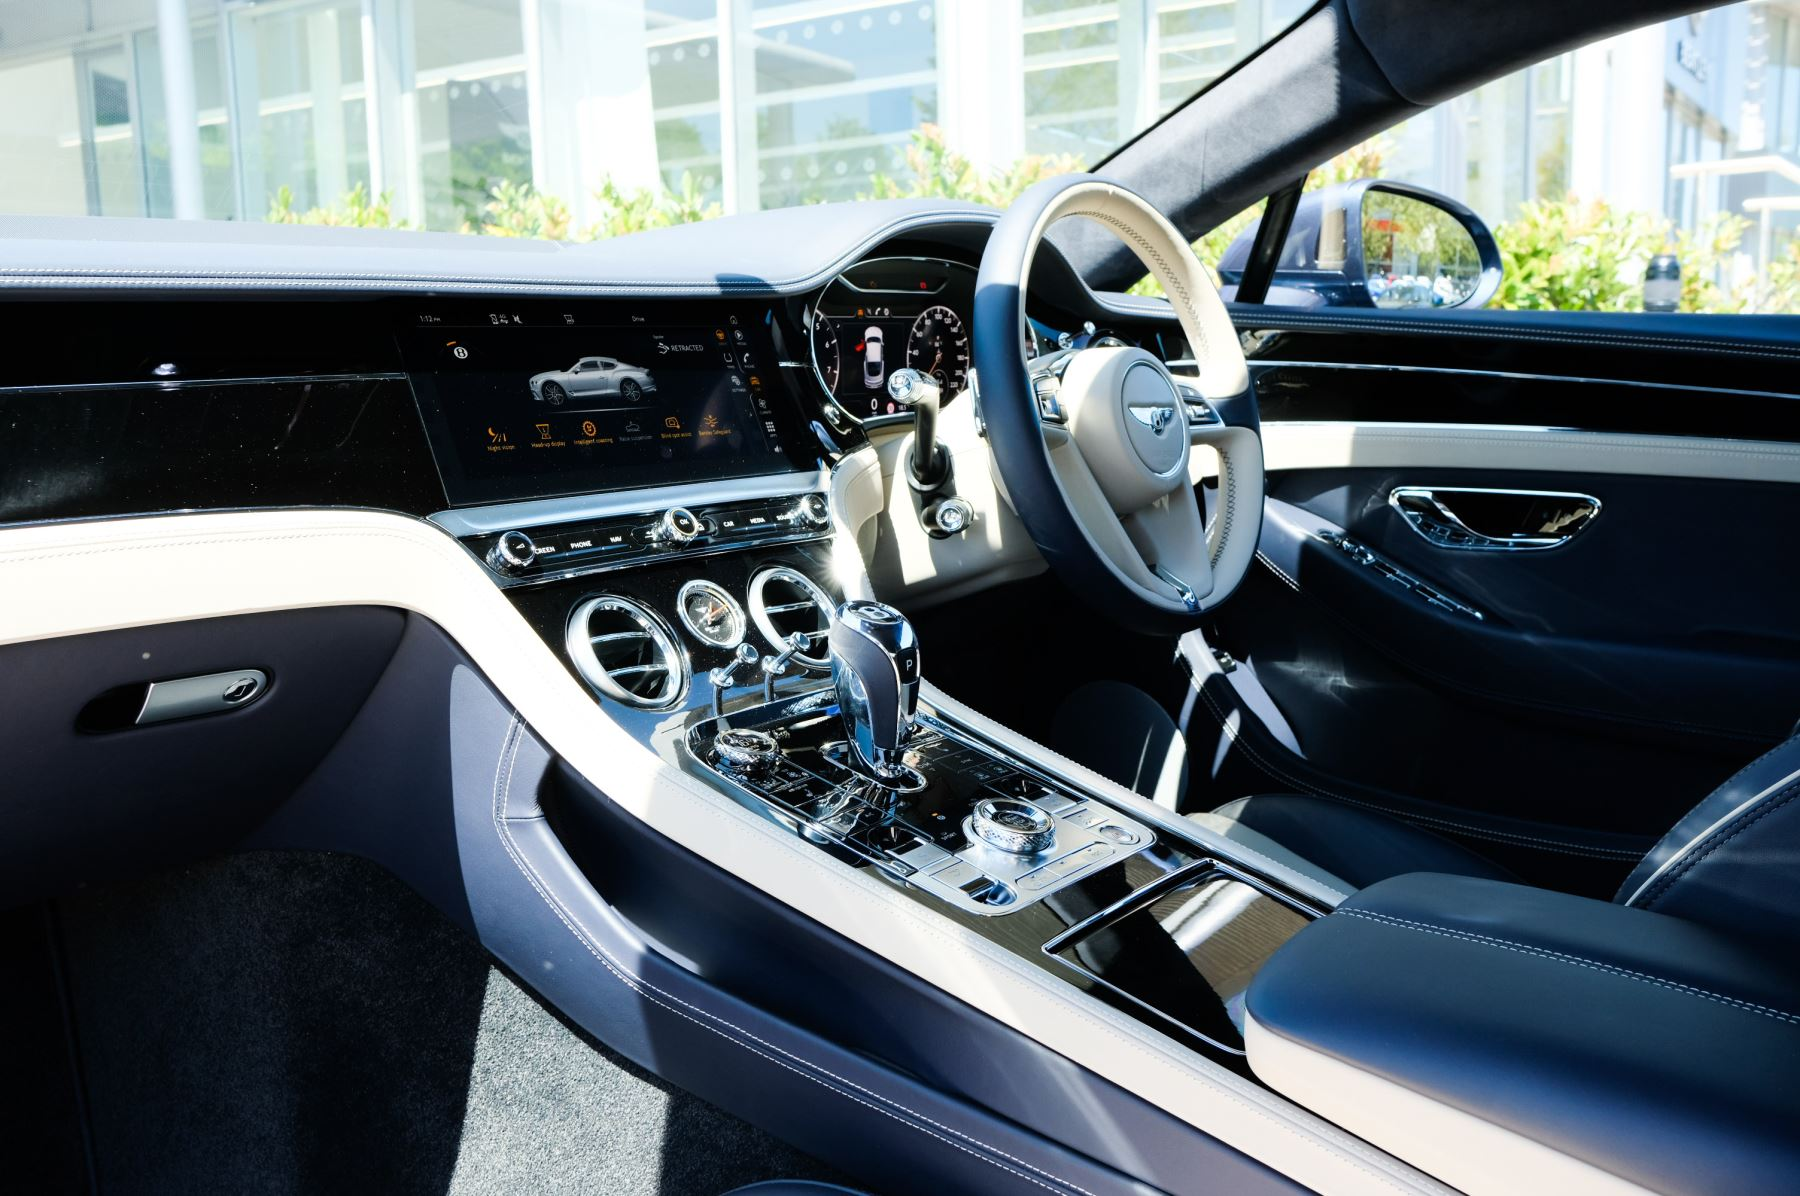 Bentley Continental GT 6.0 W12 - CITY + TOURING SPECIFICATION image 11